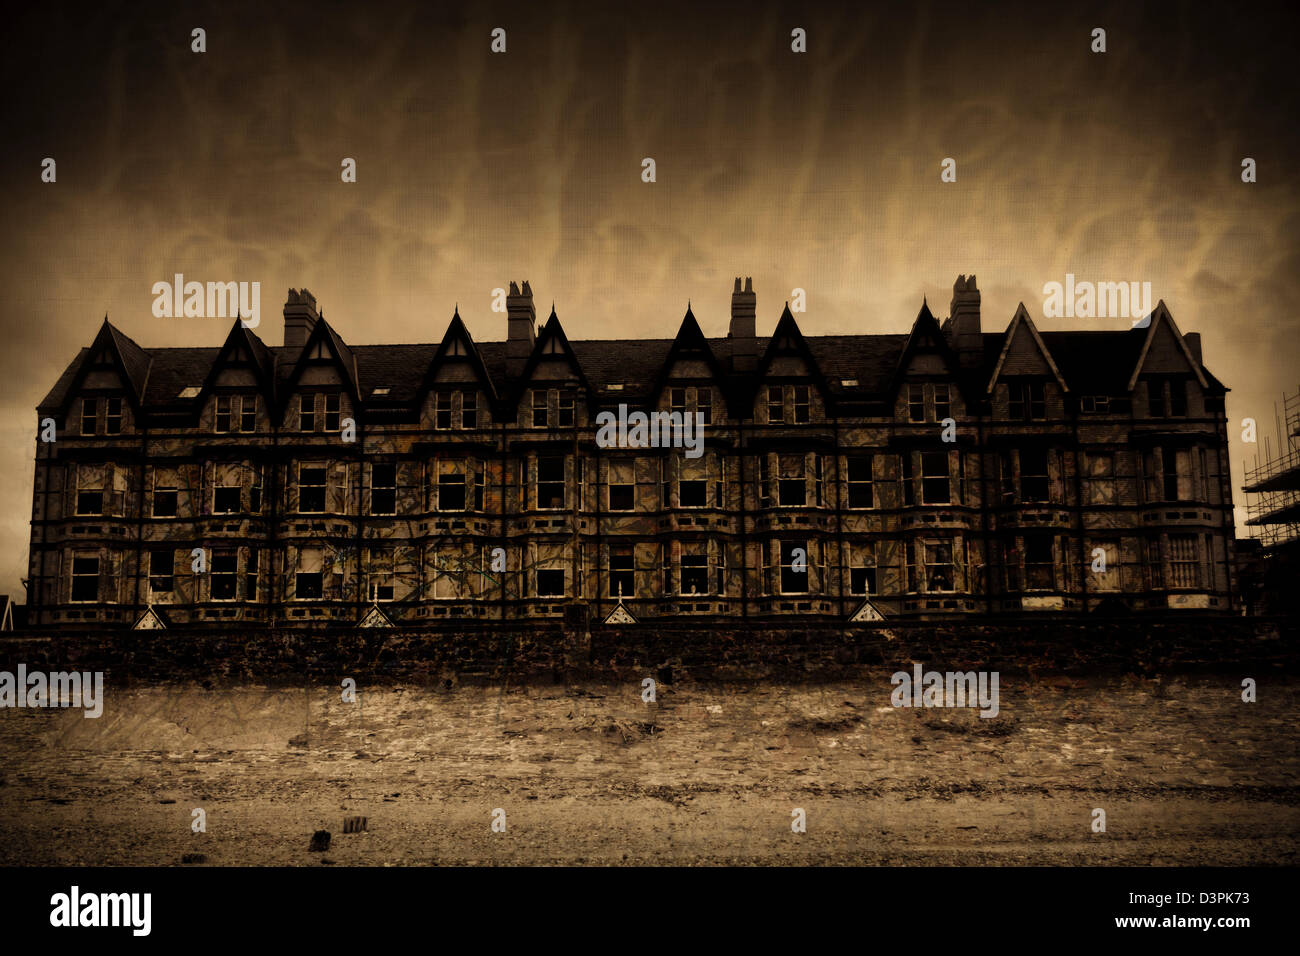 Old dark scary building in sepia - Stock Image